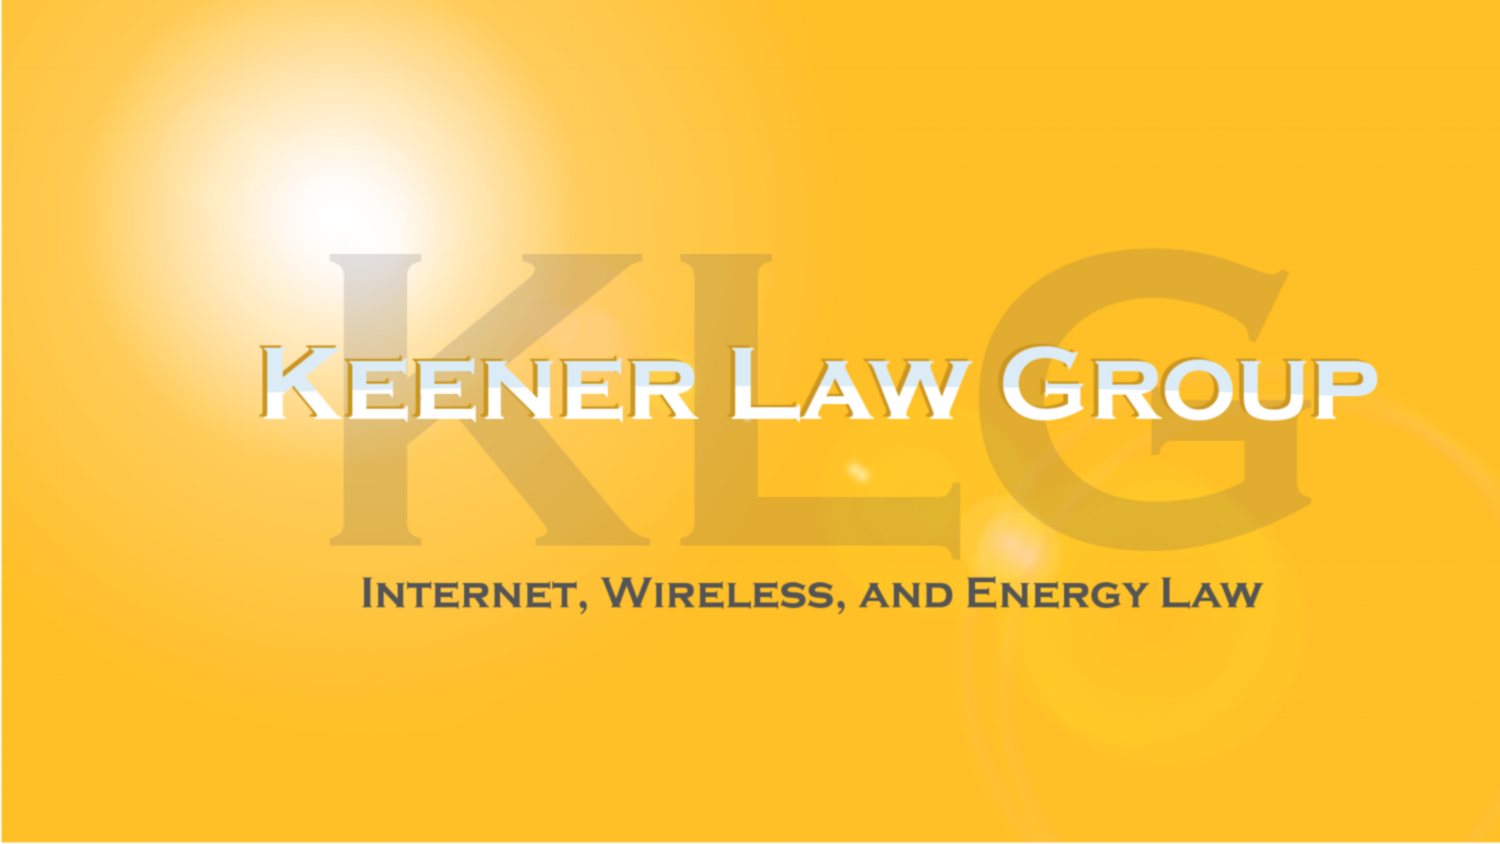 Keener Law Group